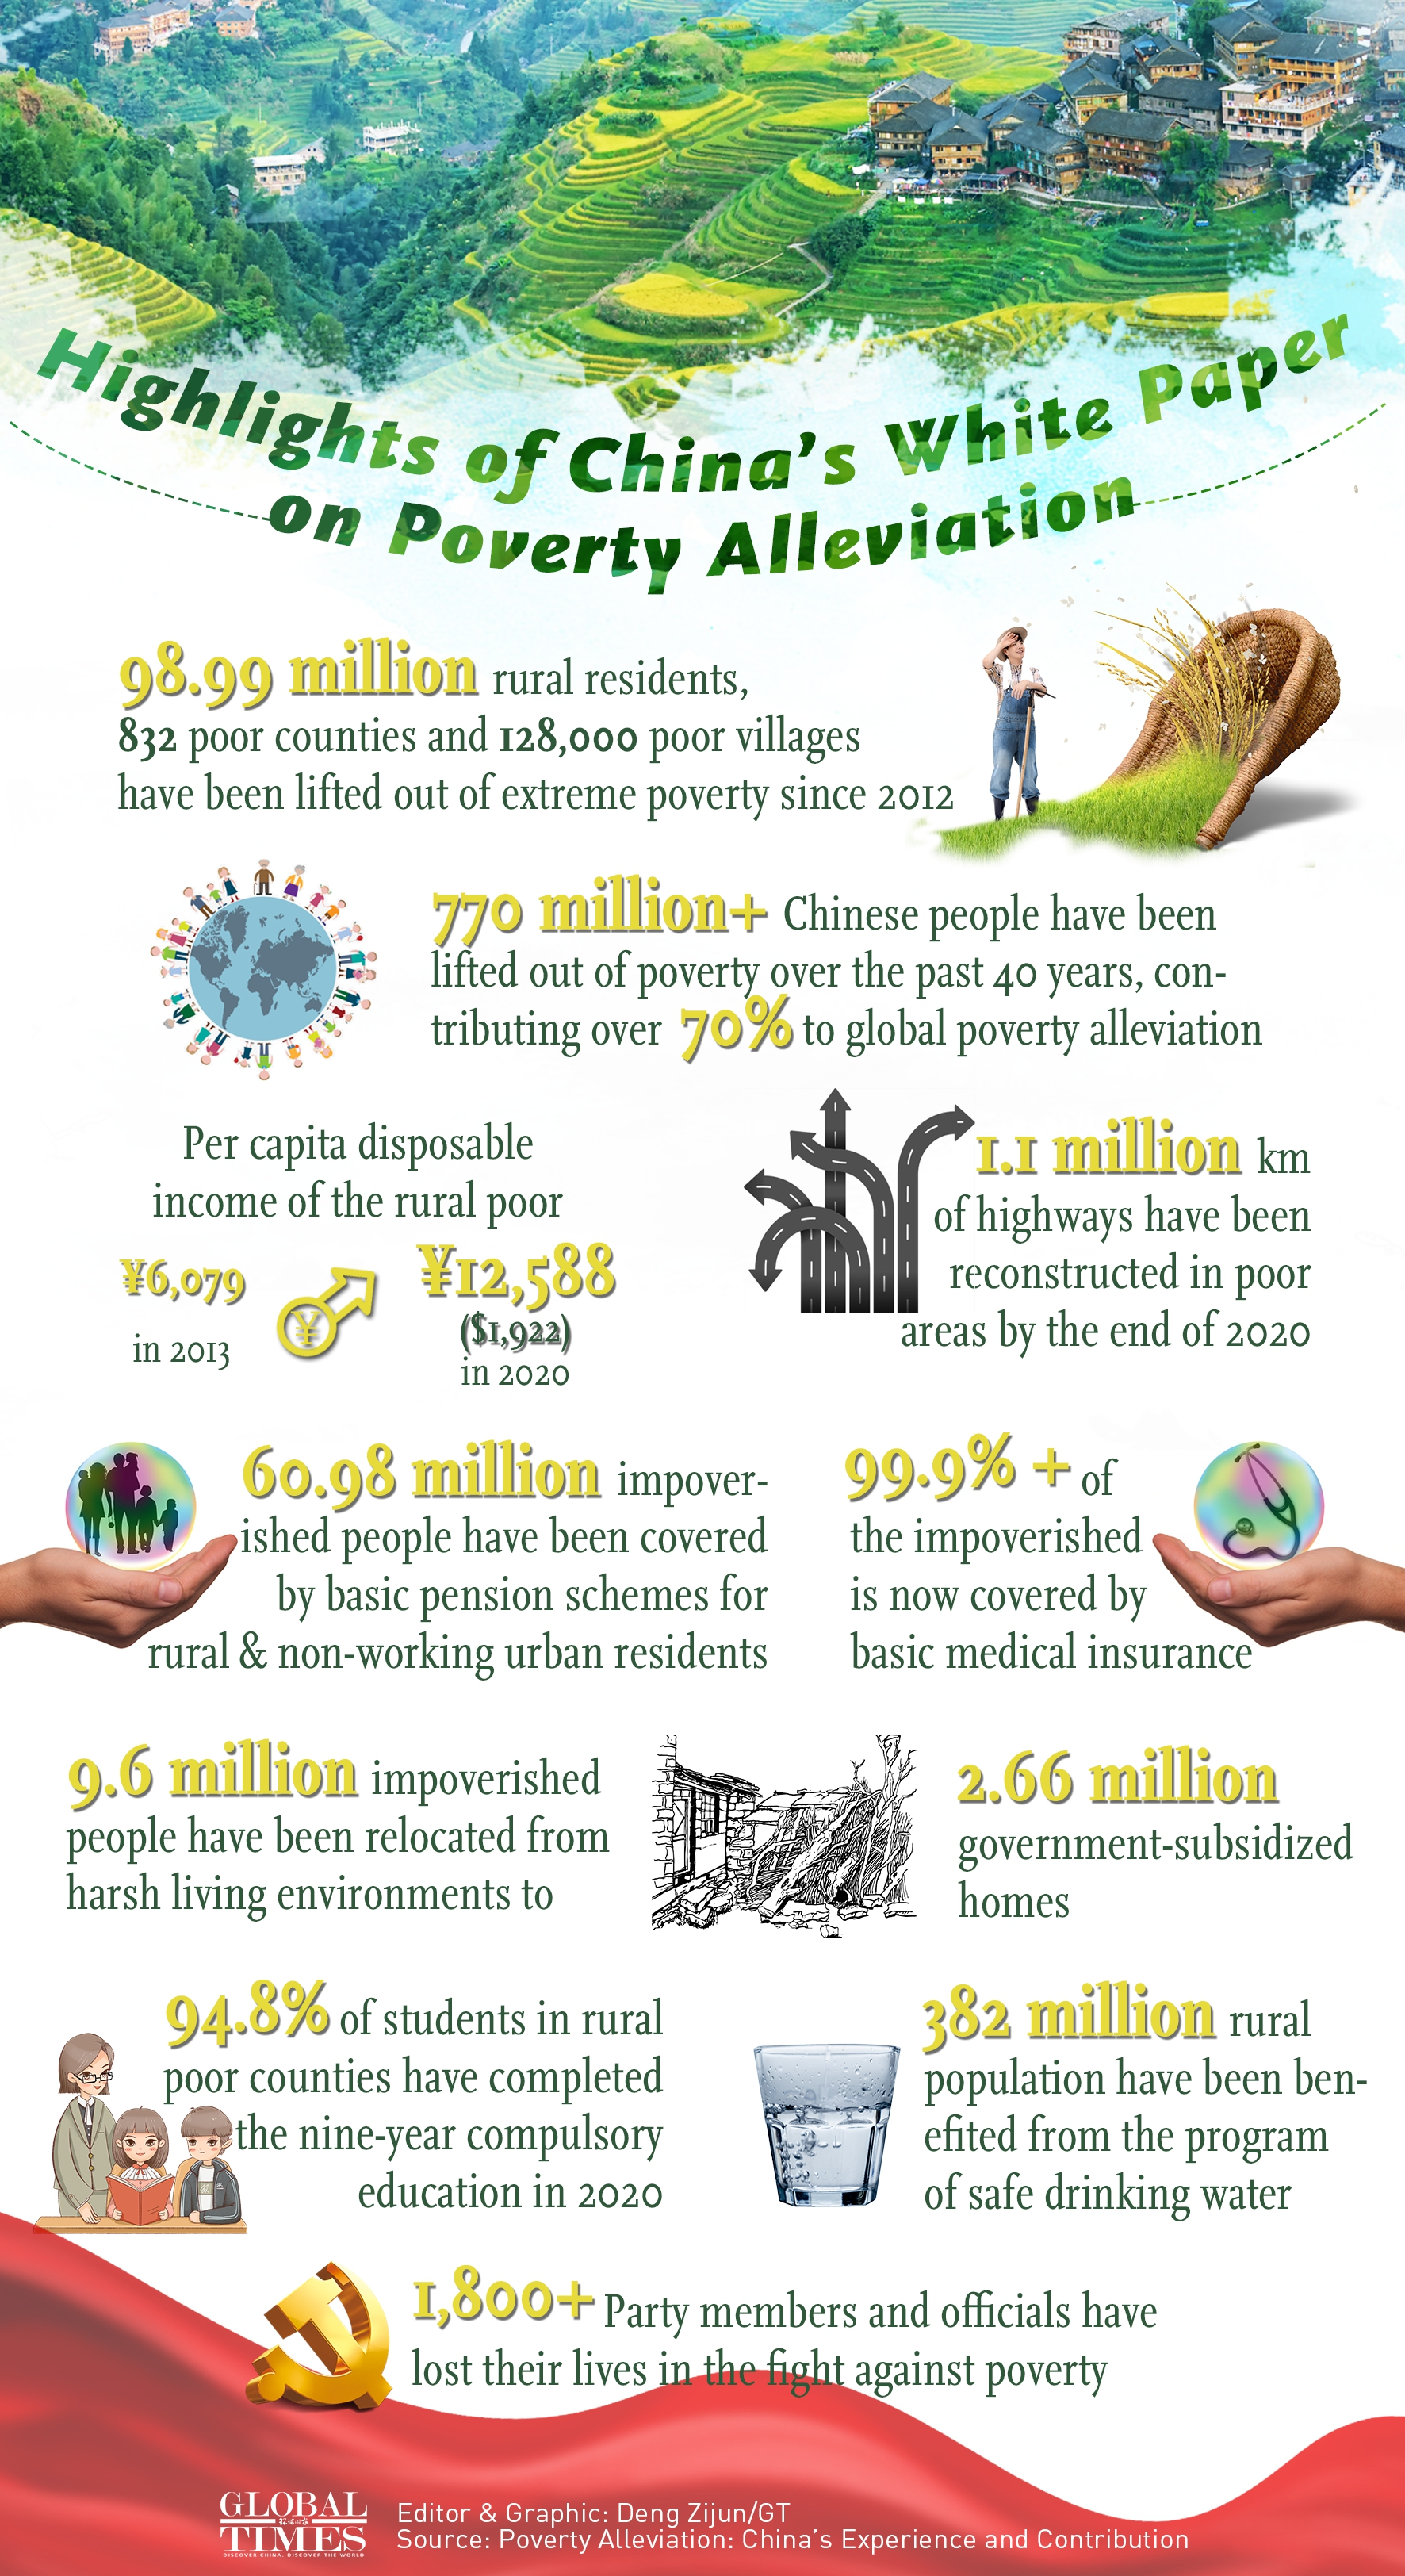 Highlights of China's White Paper on Poverty Alleviation Infographic: Deng Zijun/GT